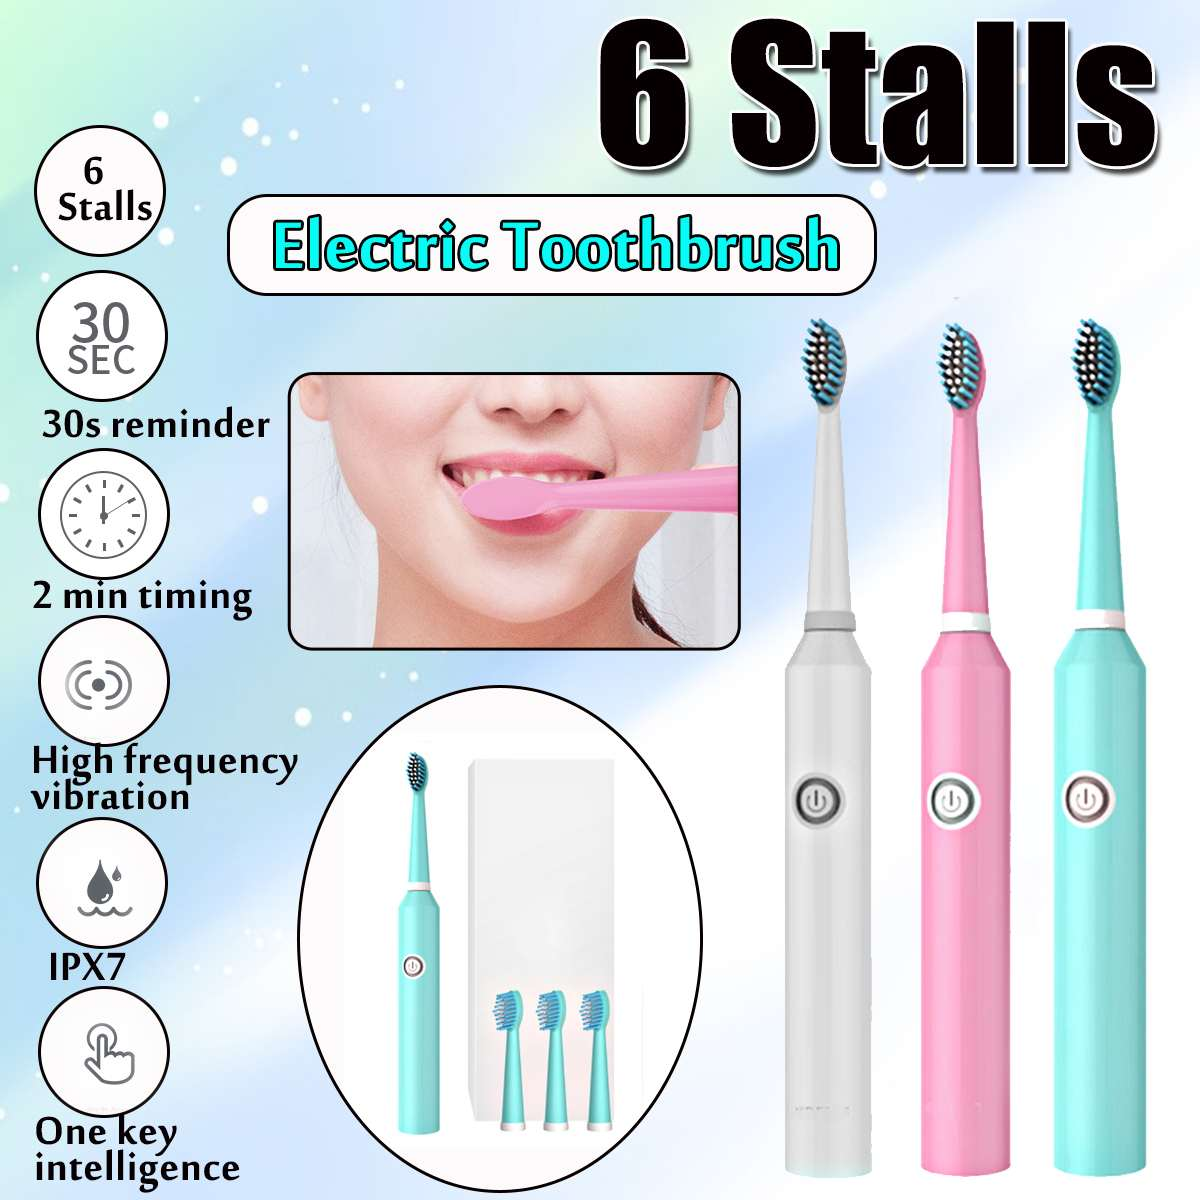 Soft Electric Toothbrush 6 Stalls Acoustic Wave Vibration Waterproof with 4 Brush Head Replaceable Whitening Healthy Best Gift image